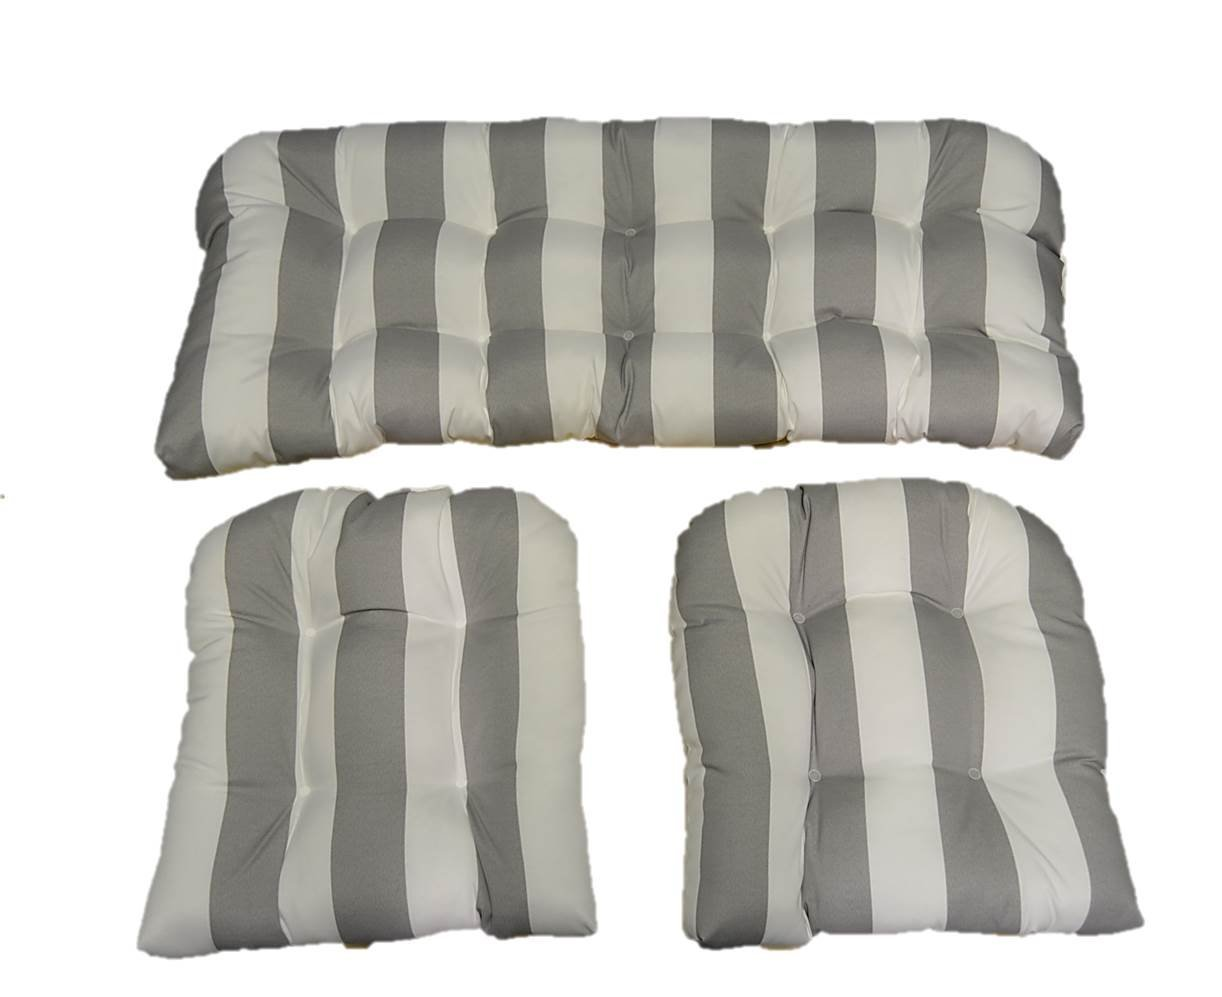 3 Piece Wicker Cushion Set - Gray / Grey and White Stripe Indoor / Outdoor Fabric Cushion for Wicker Loveseat Settee & 2 Matching Chair Cushions